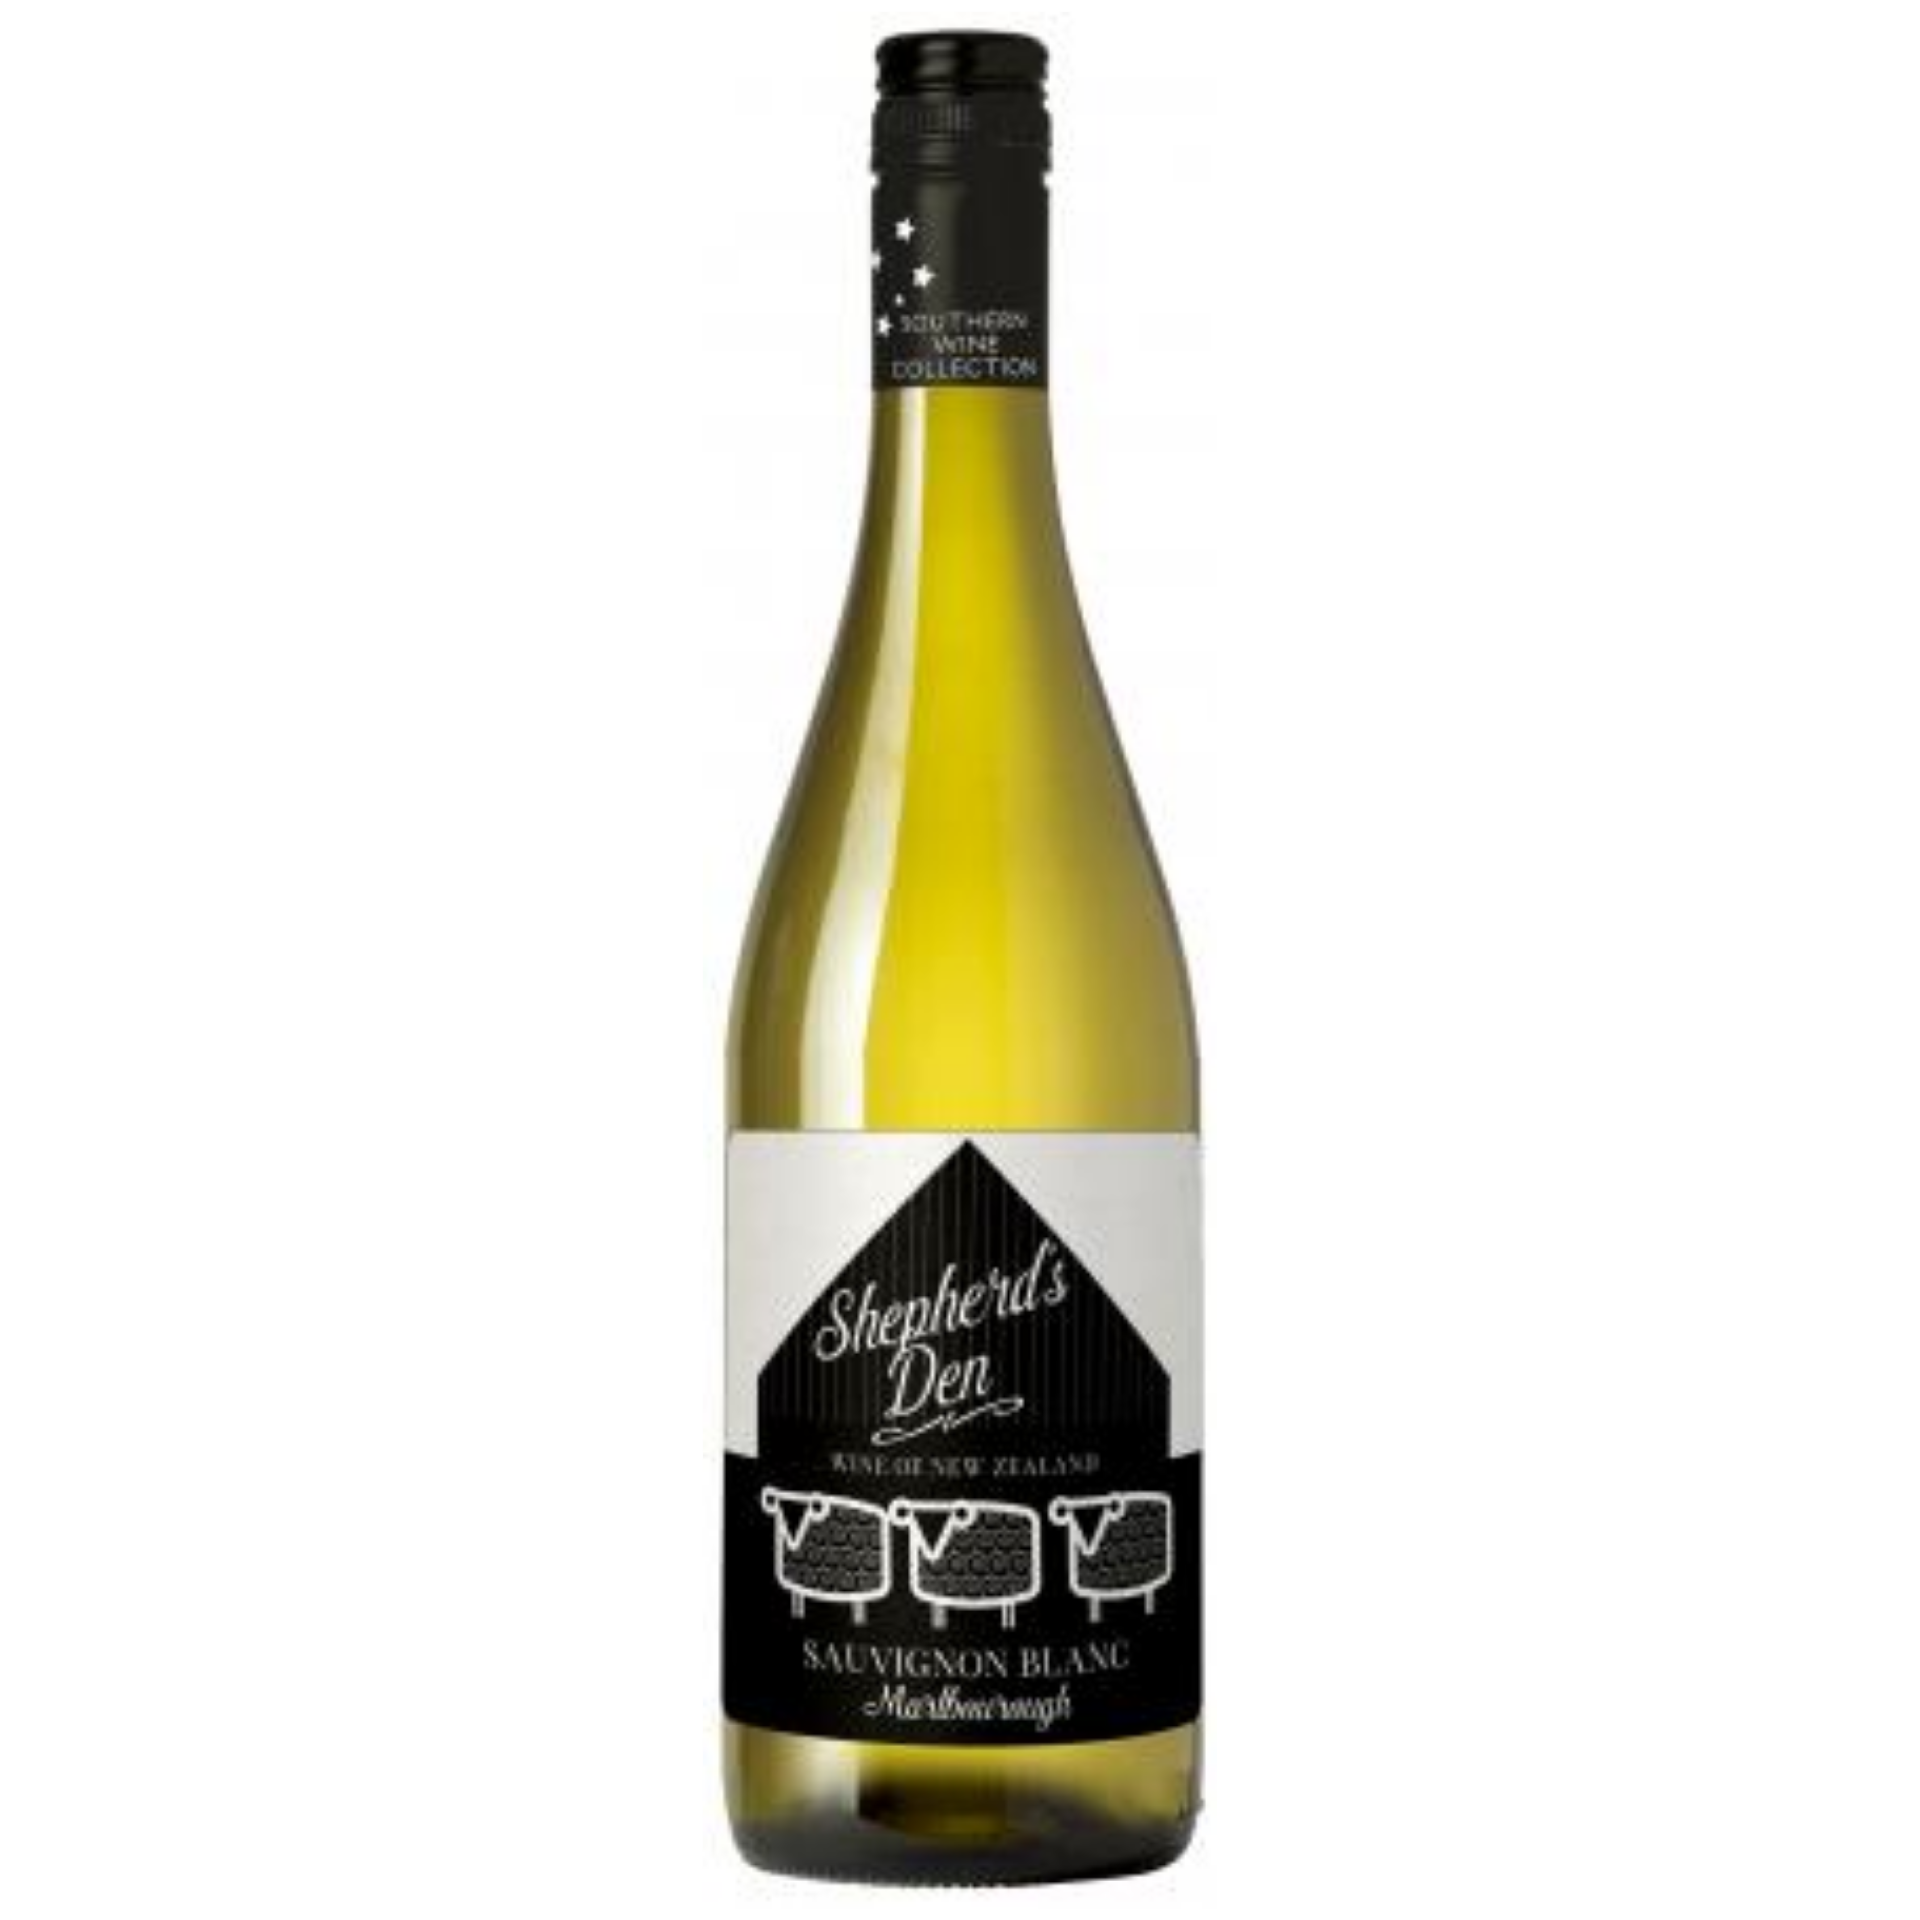 Shepherds Den Sauvignon Blanc 2018 750ml